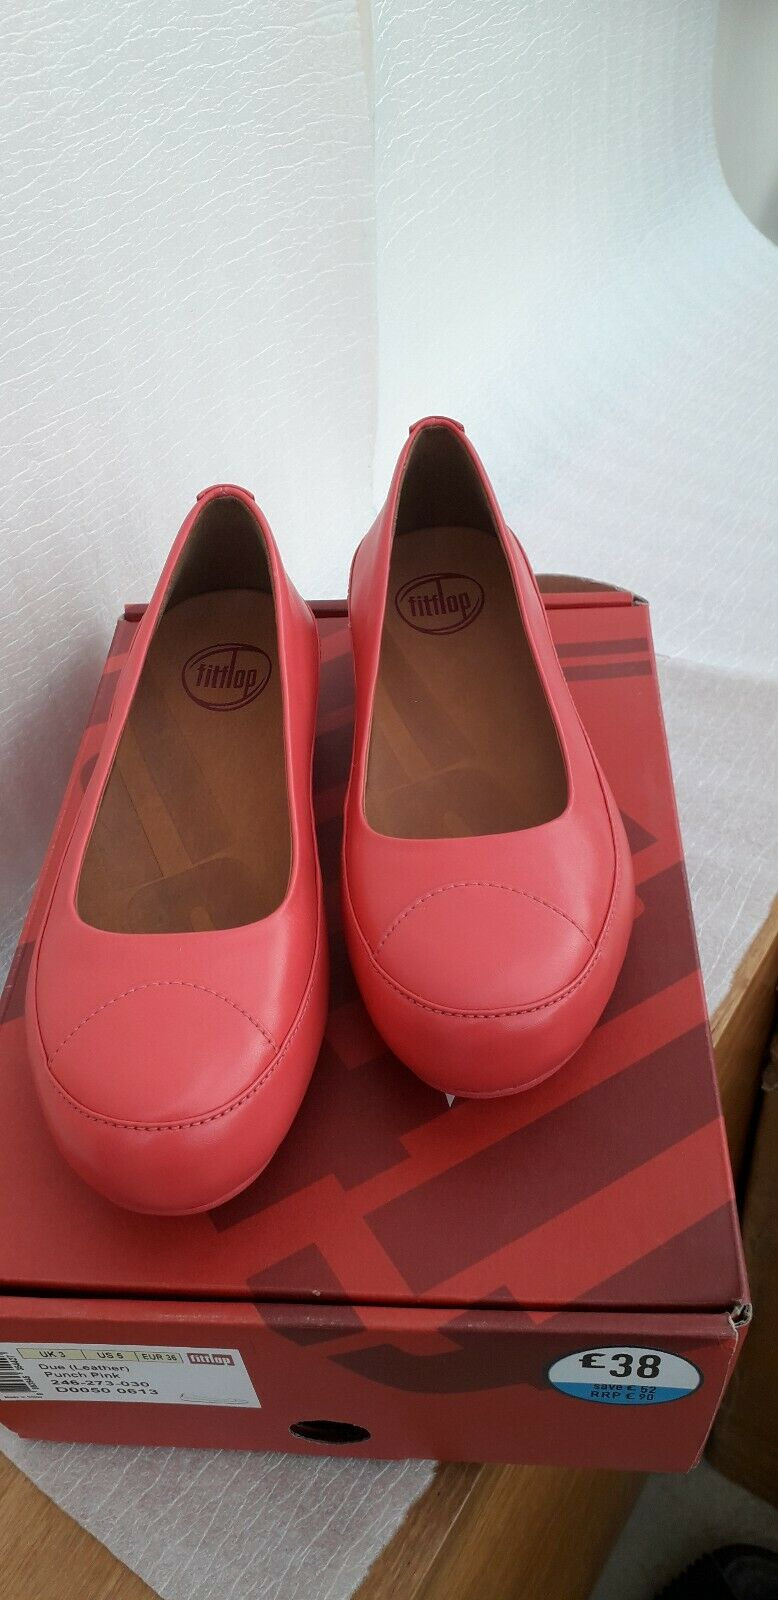 Fittlop due (leather) pink size 3.5 new